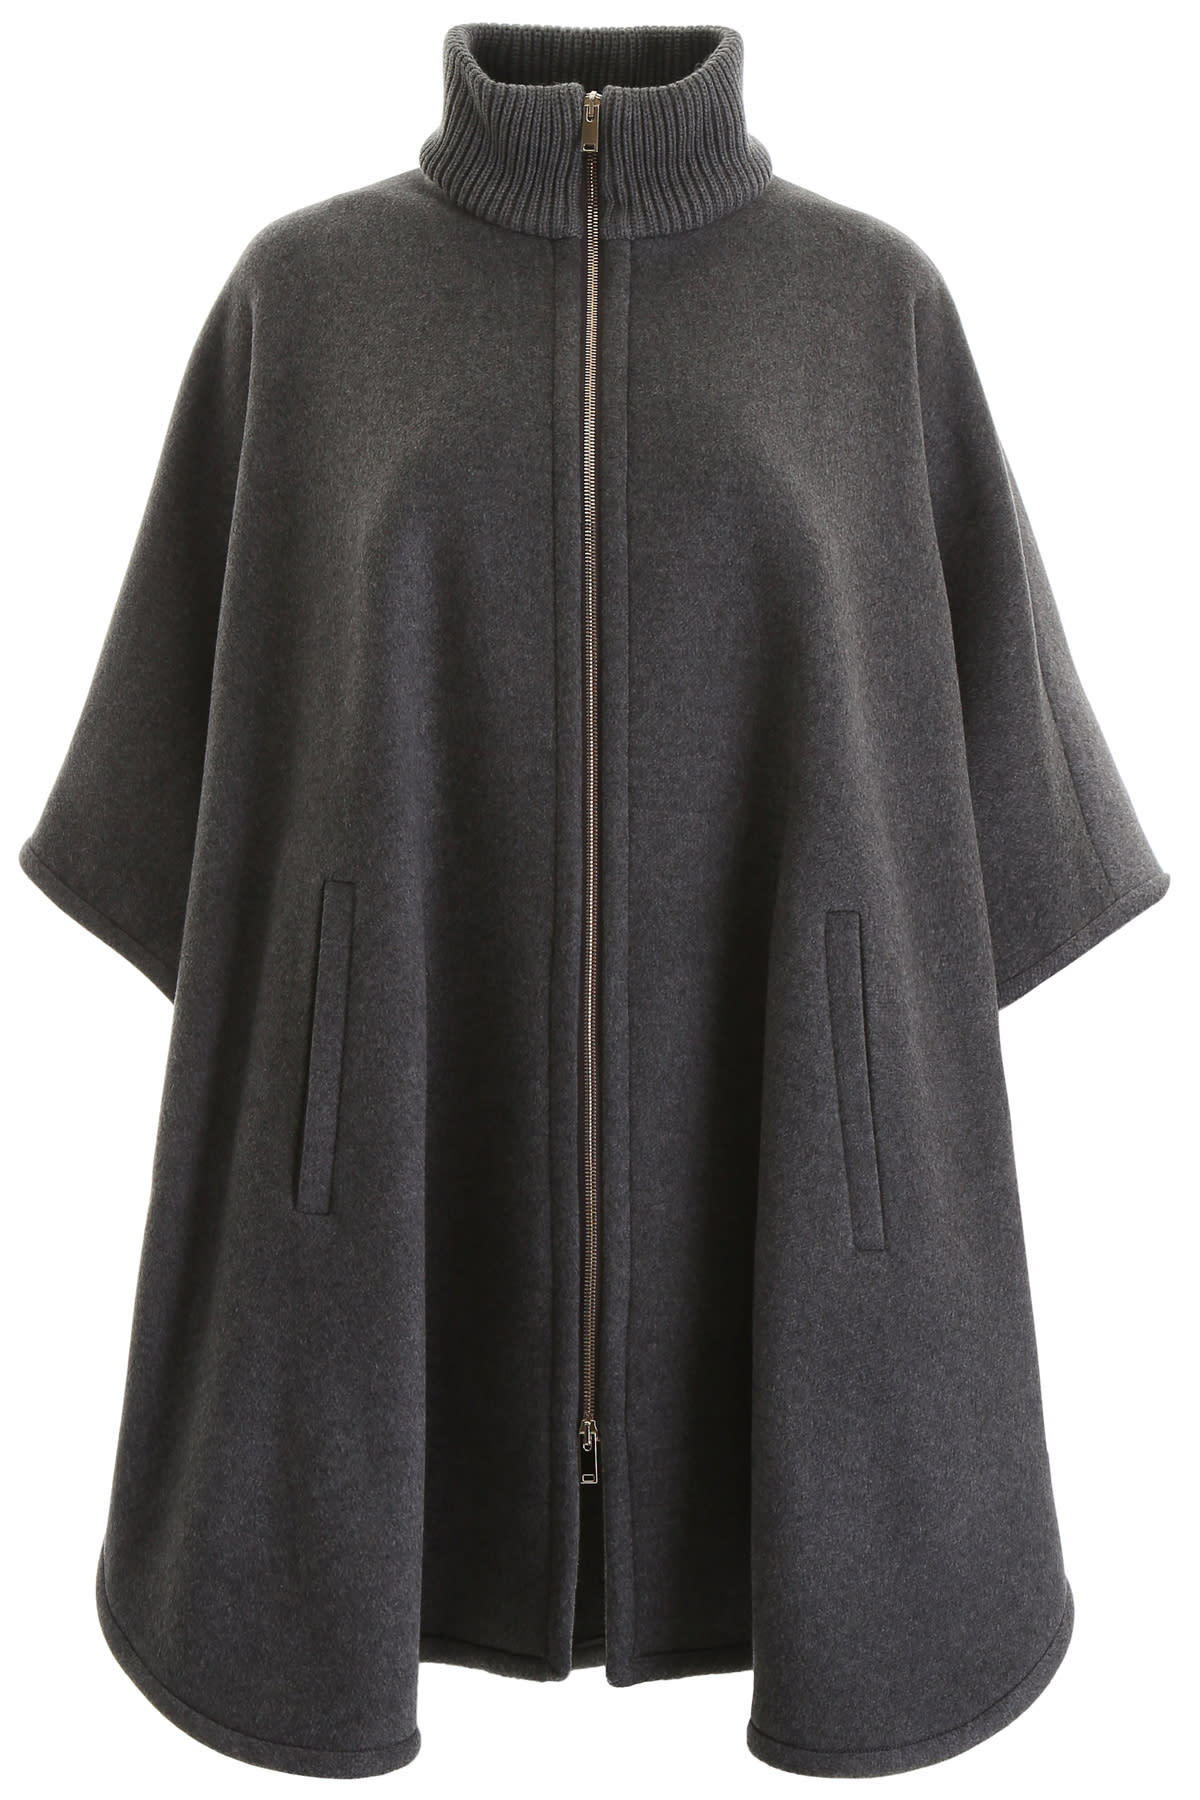 Stella McCartney Wool Cape